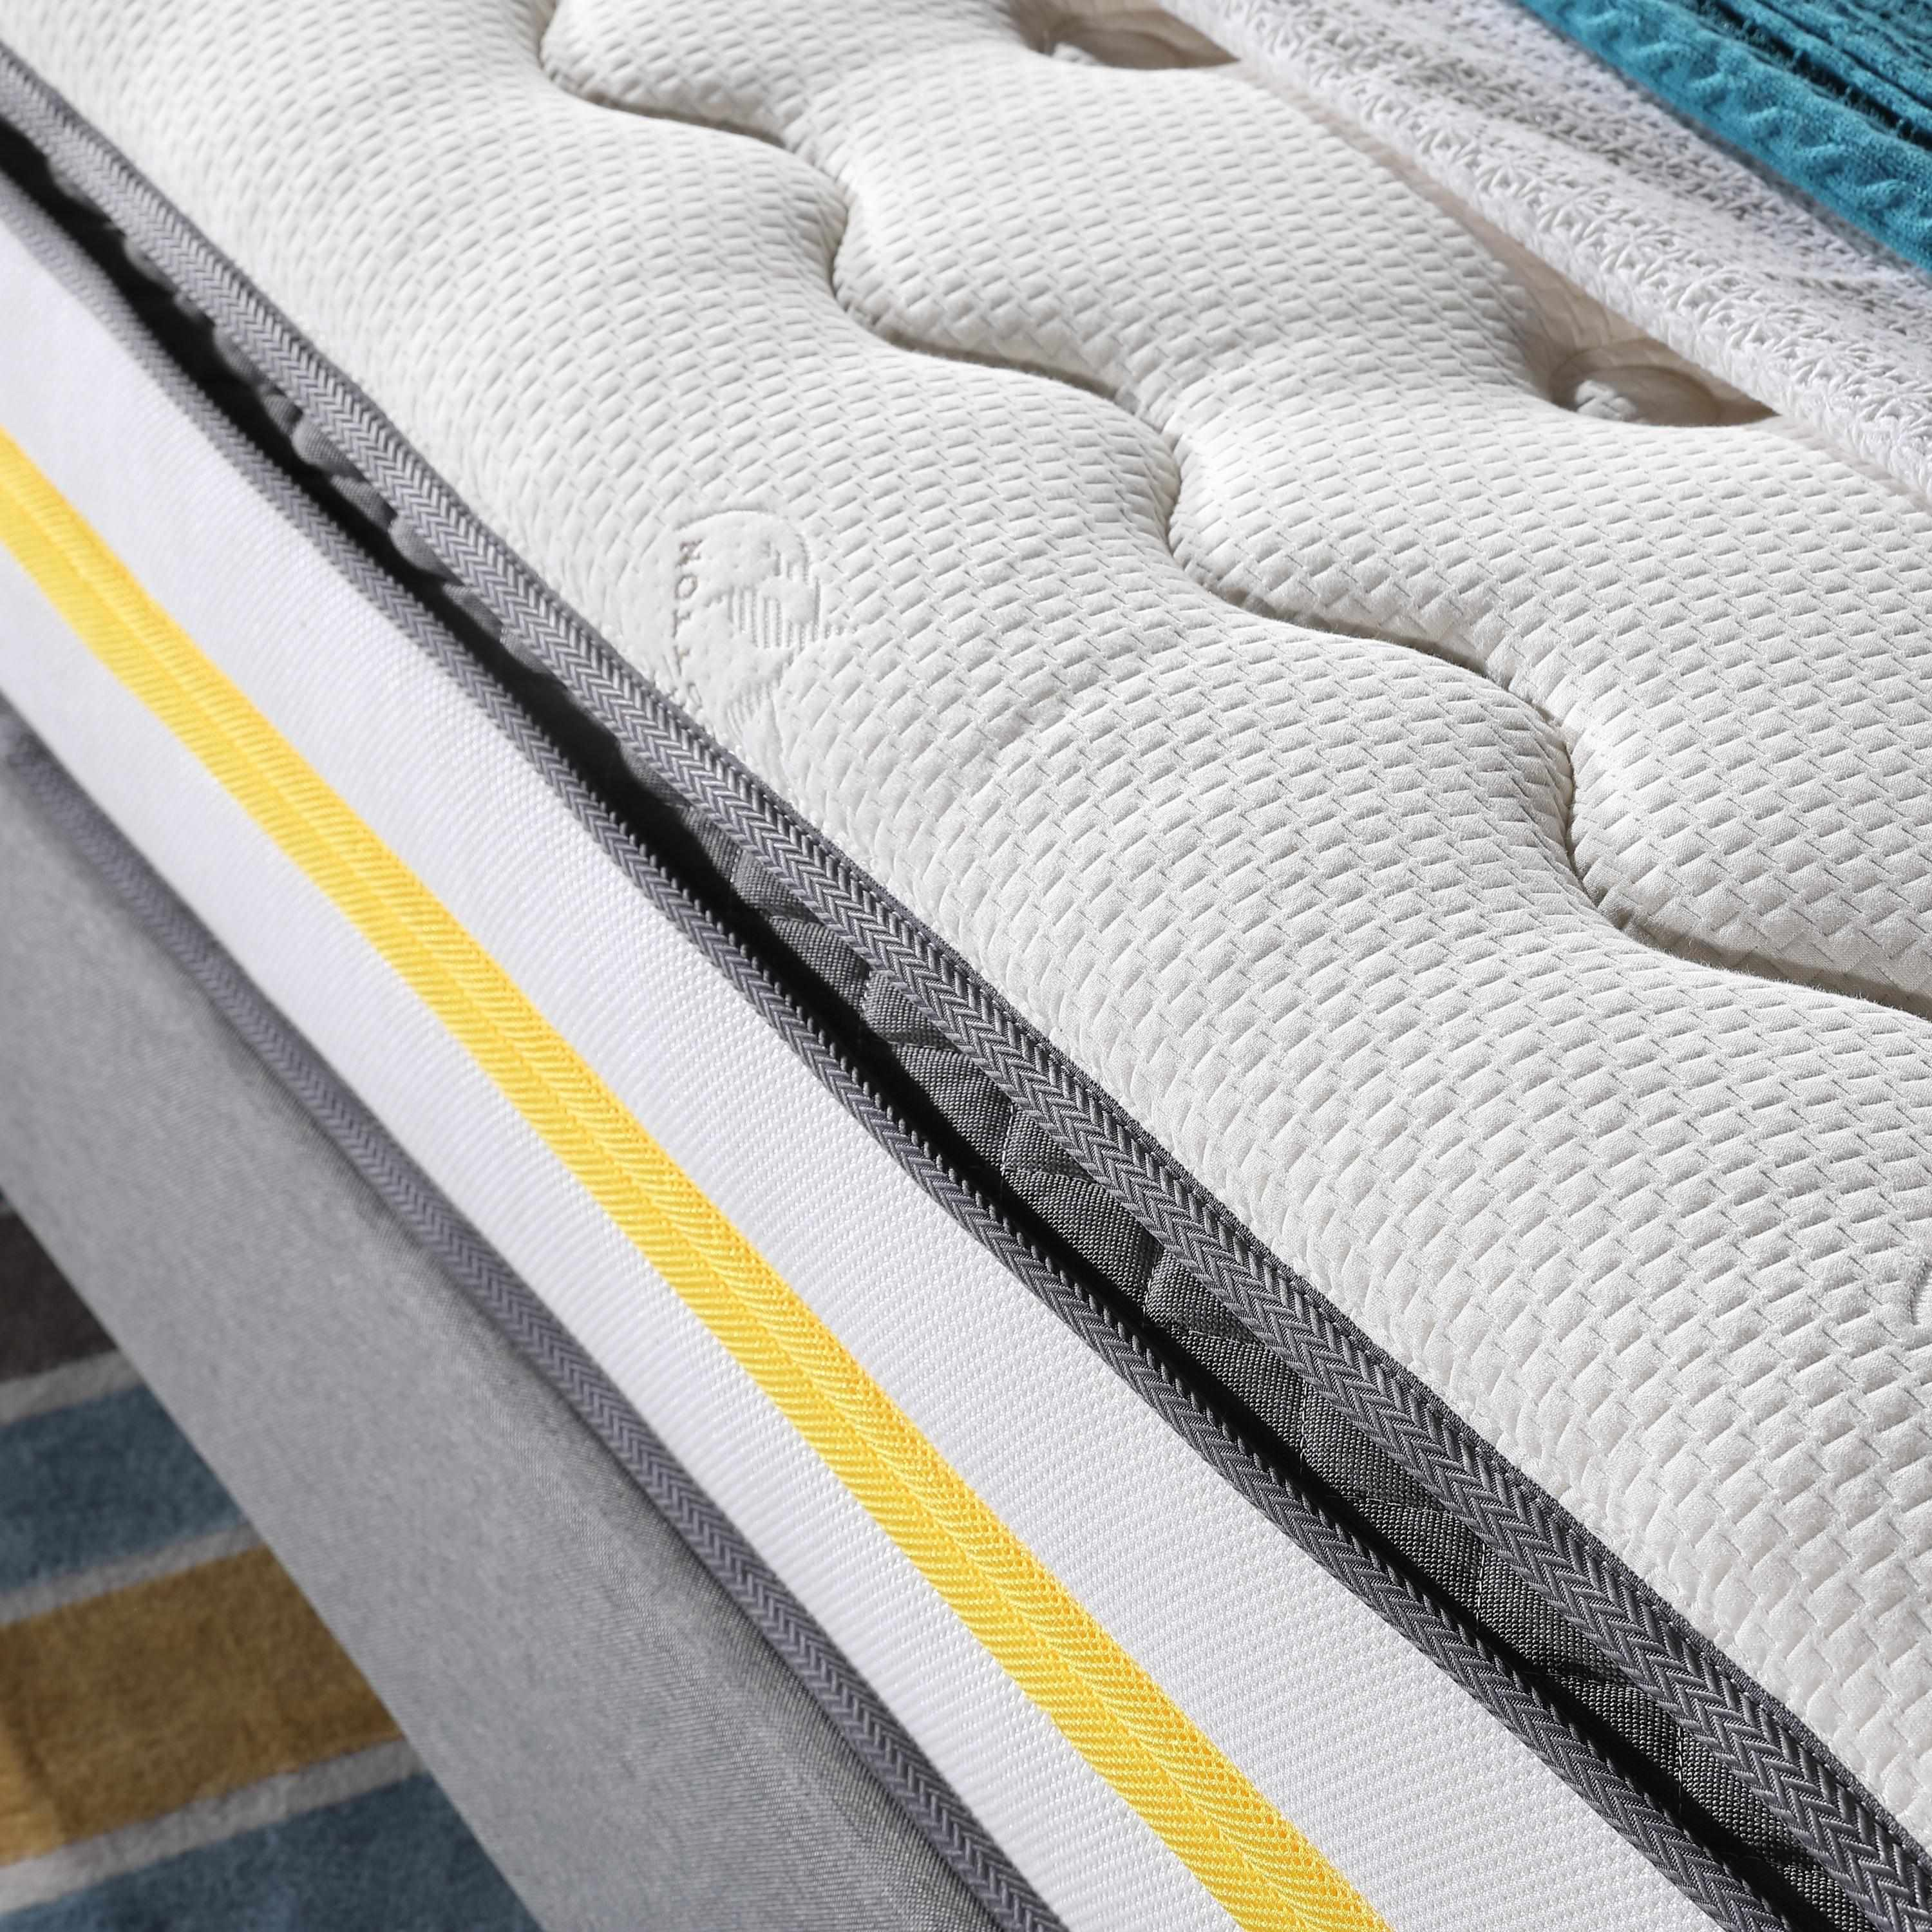 application-home innerspring full size mattress Comfortable Series with elasticity JLH-JLH-img